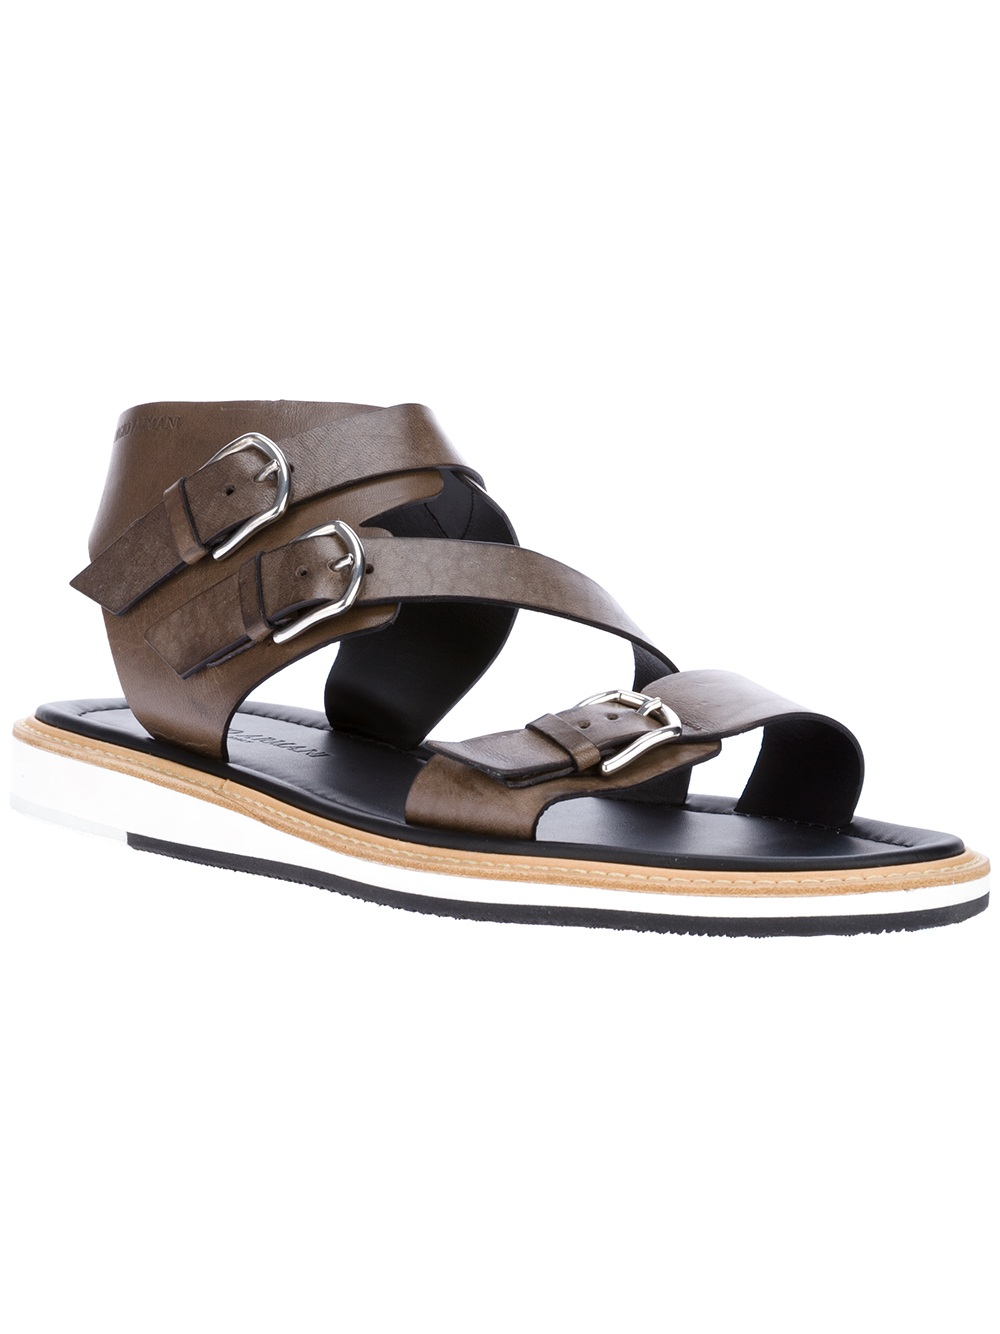 4419cd1cdbd6ef Lyst - Giorgio Armani Buckled Sandals in Brown for Men